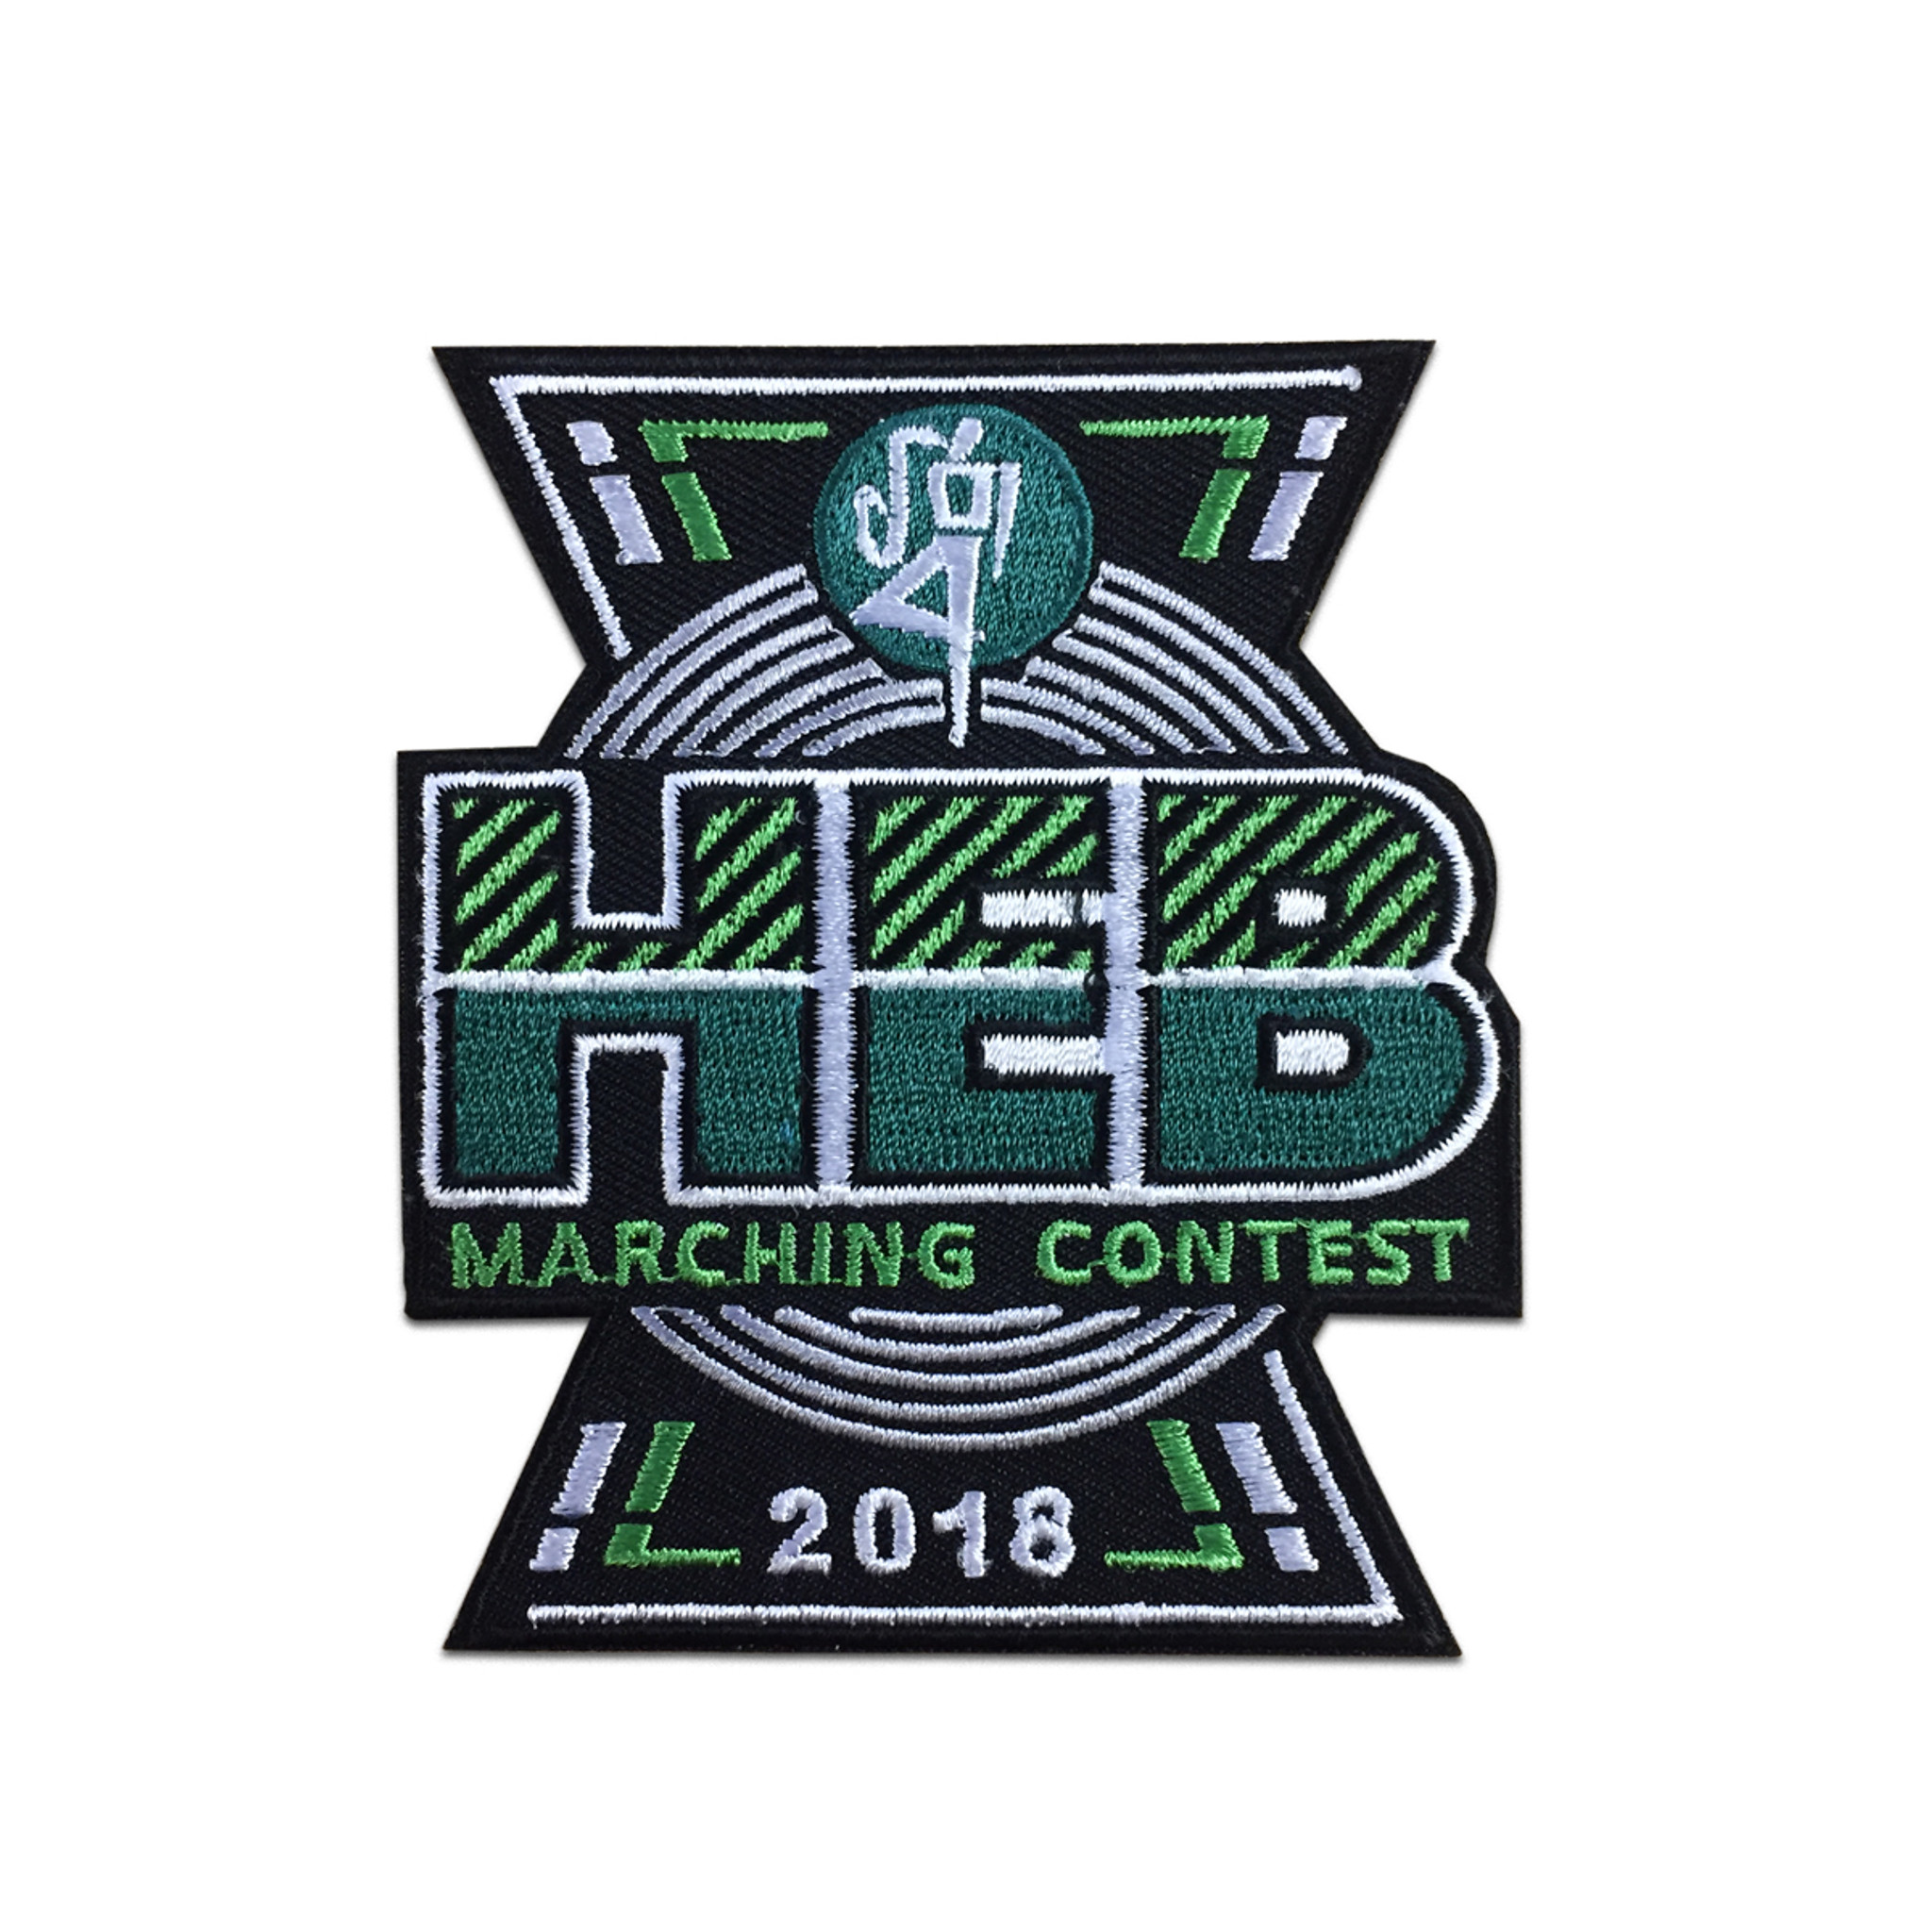 2018 HEB Marching Band Contest Event Patch